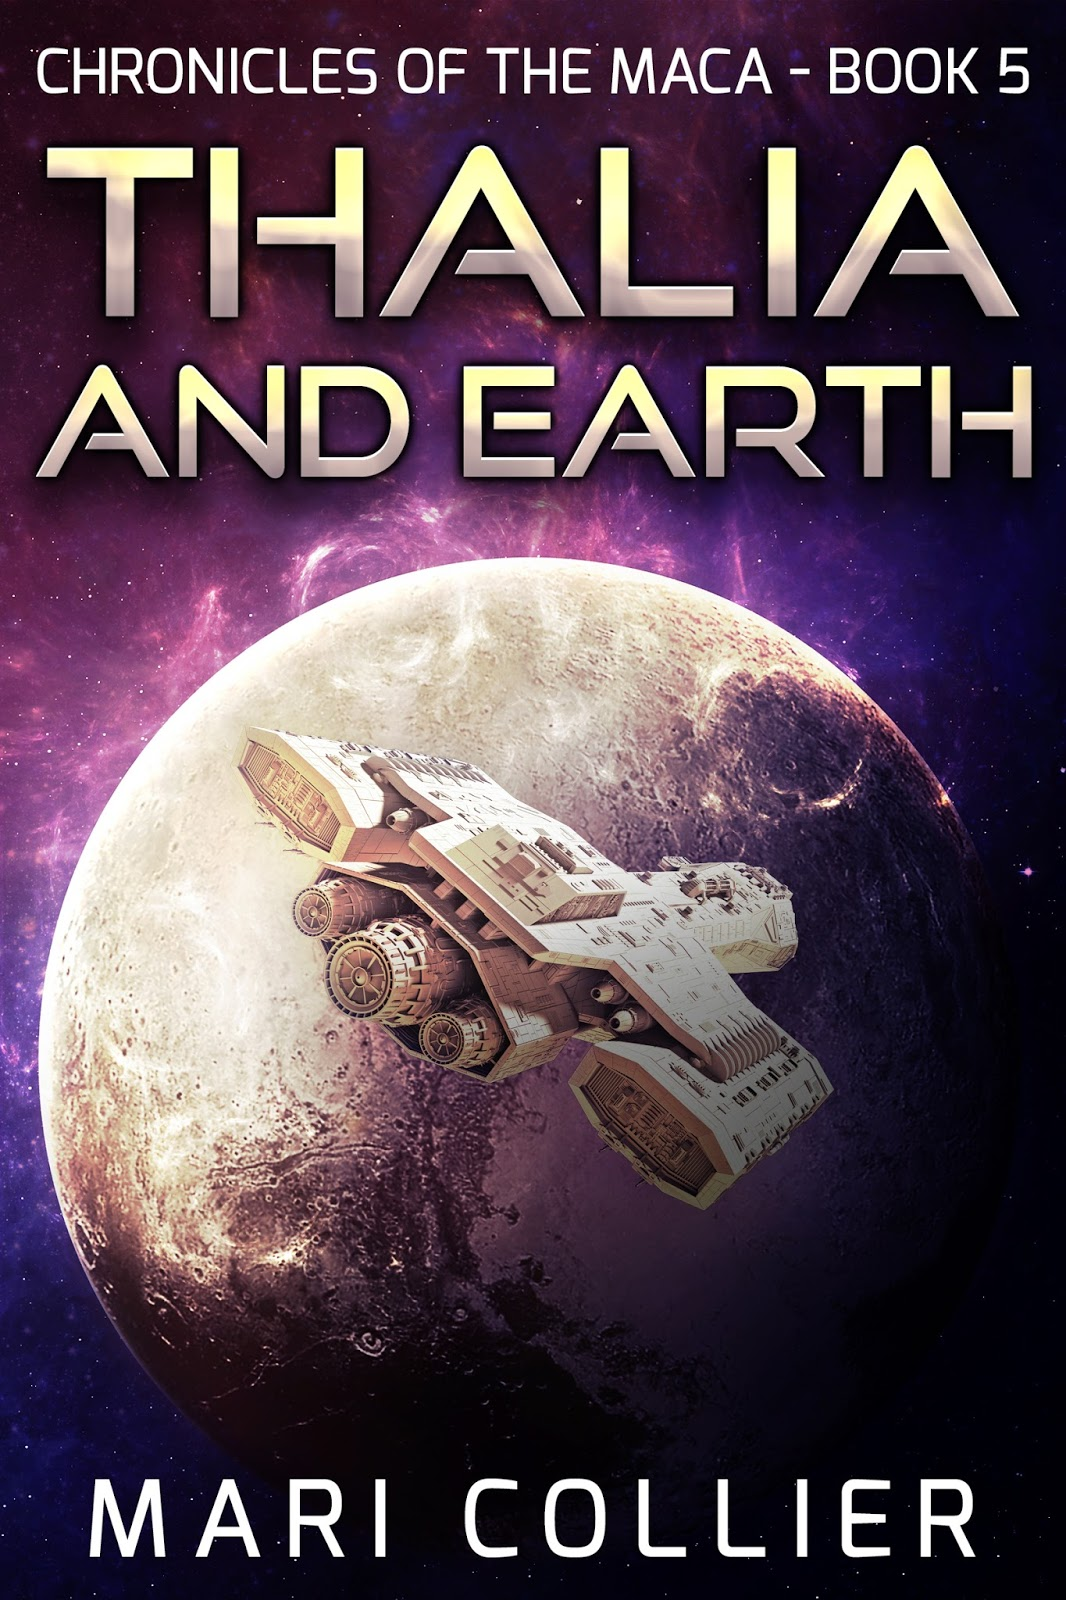 Interview with sci-fi author Mari Collier